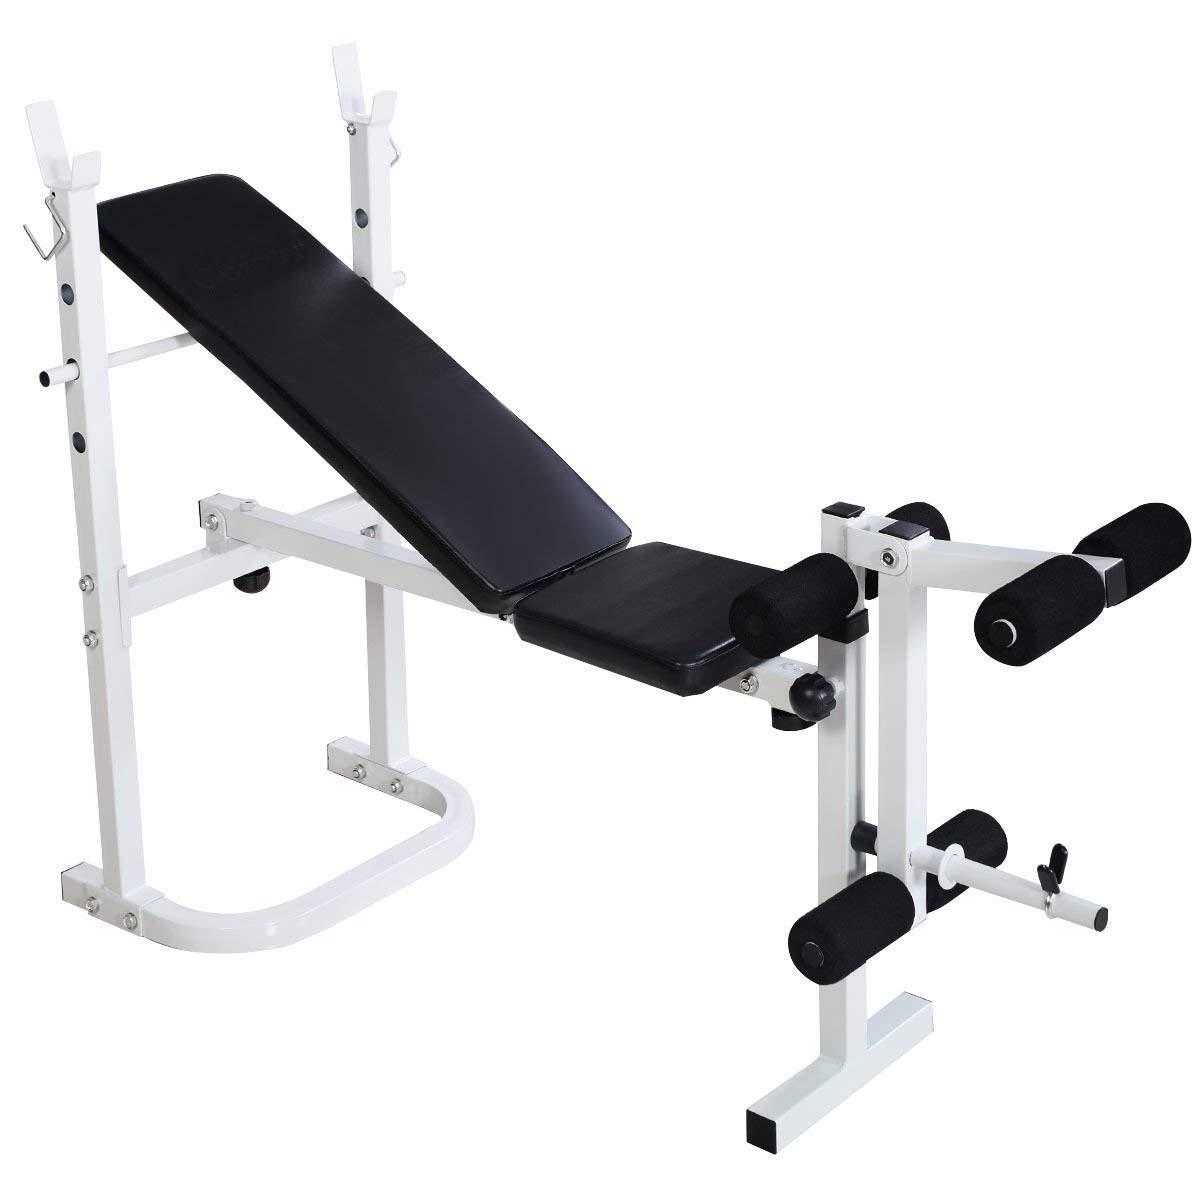 Goplus Olympic Weight Bench Adjustable Multi-Purpose Folding Incline Exercise Bench Weight Lifting Beach for Full Body Workout (Black)